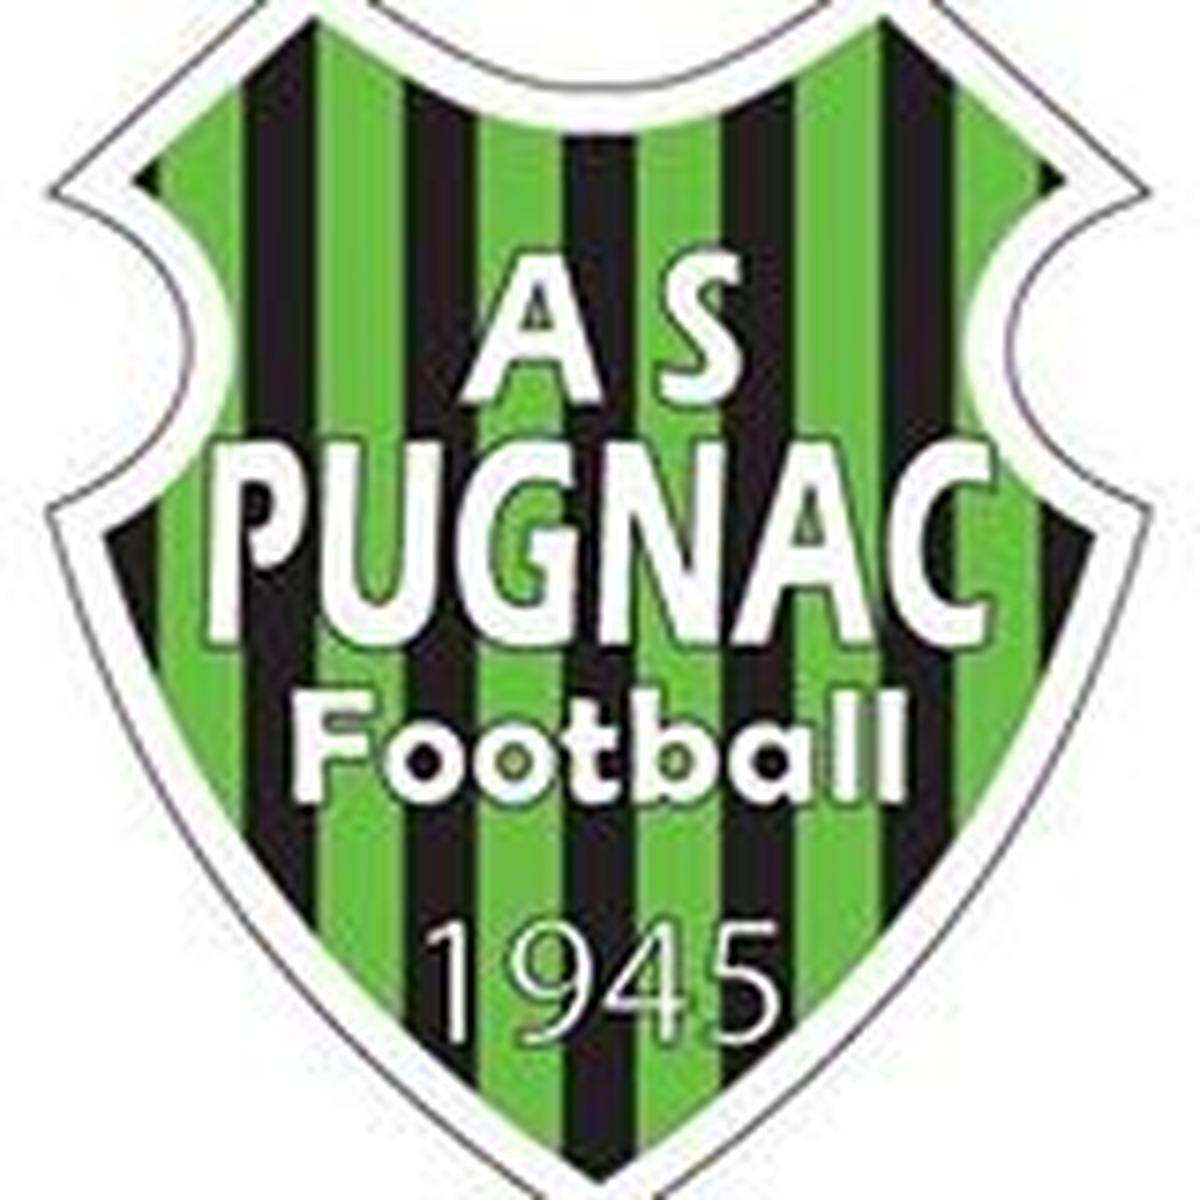 AS PUGNAC Football